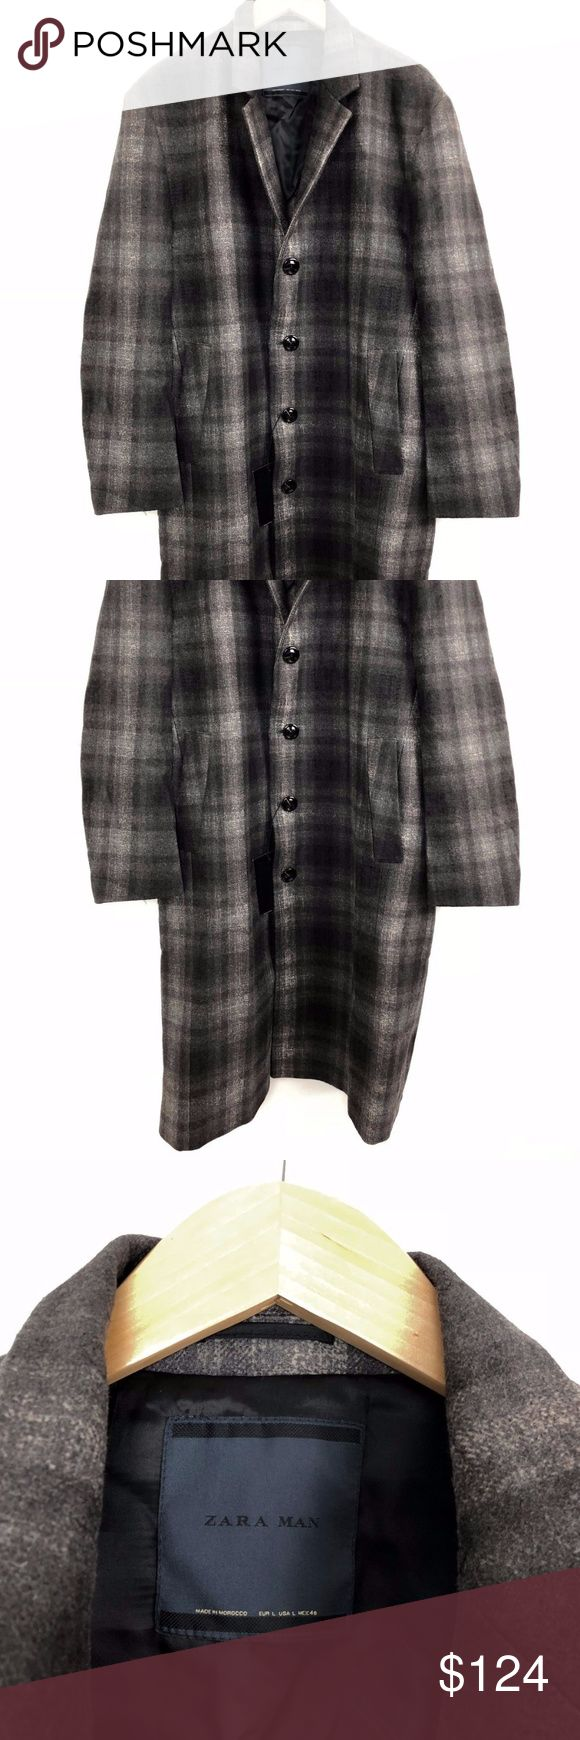 """Zara Trench Coat NWT $229 Wool Jacket Blazer Plaid Zara Men's Coat Size Large Plaid Wool Trench Classic Long Jacket  Condition: New with tags Fabric: Wool Pattern: Plaid & Checks Pockets  Approximate measurements taken flat: Chest (underarm to underarm): 26.5""""  Length (shoulder to hem): 46"""" Sleeve length (underarm to cuff): 15""""  This Zara wool trench coat is a classic staple that easily transitions to many seasons. Zara Jackets & Coats Trench Coats"""